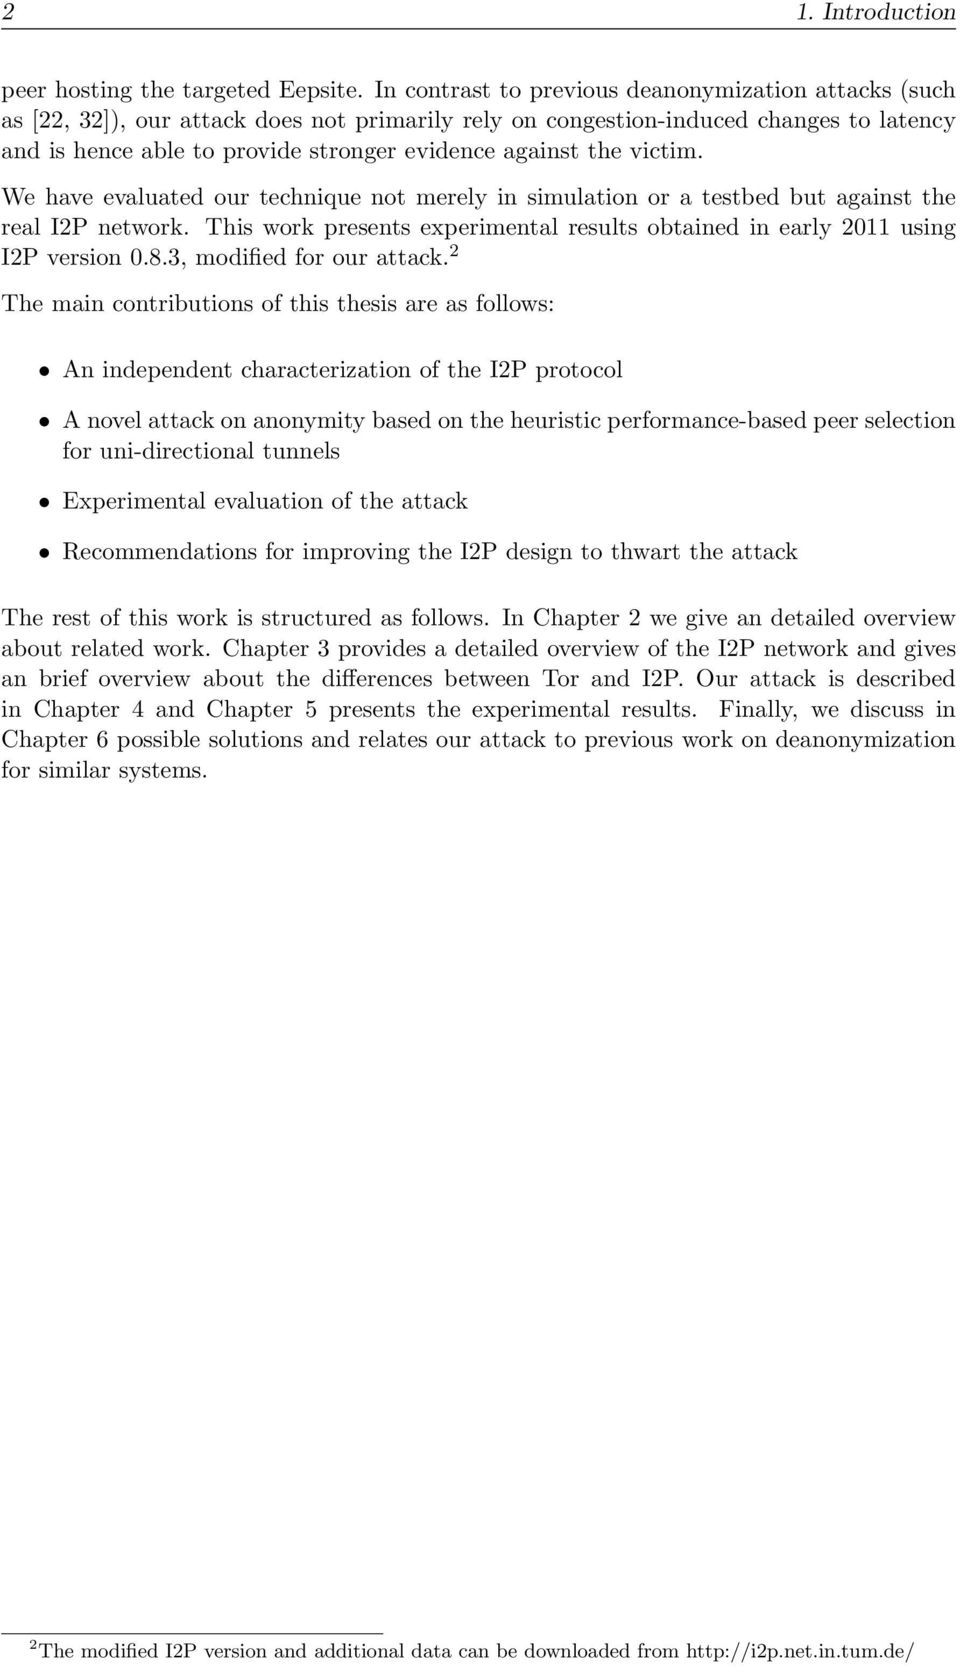 the victim. We have evaluated our technique not merely in simulation or a testbed but against the real I2P network. This work presents experimental results obtained in early 2011 using I2P version 0.